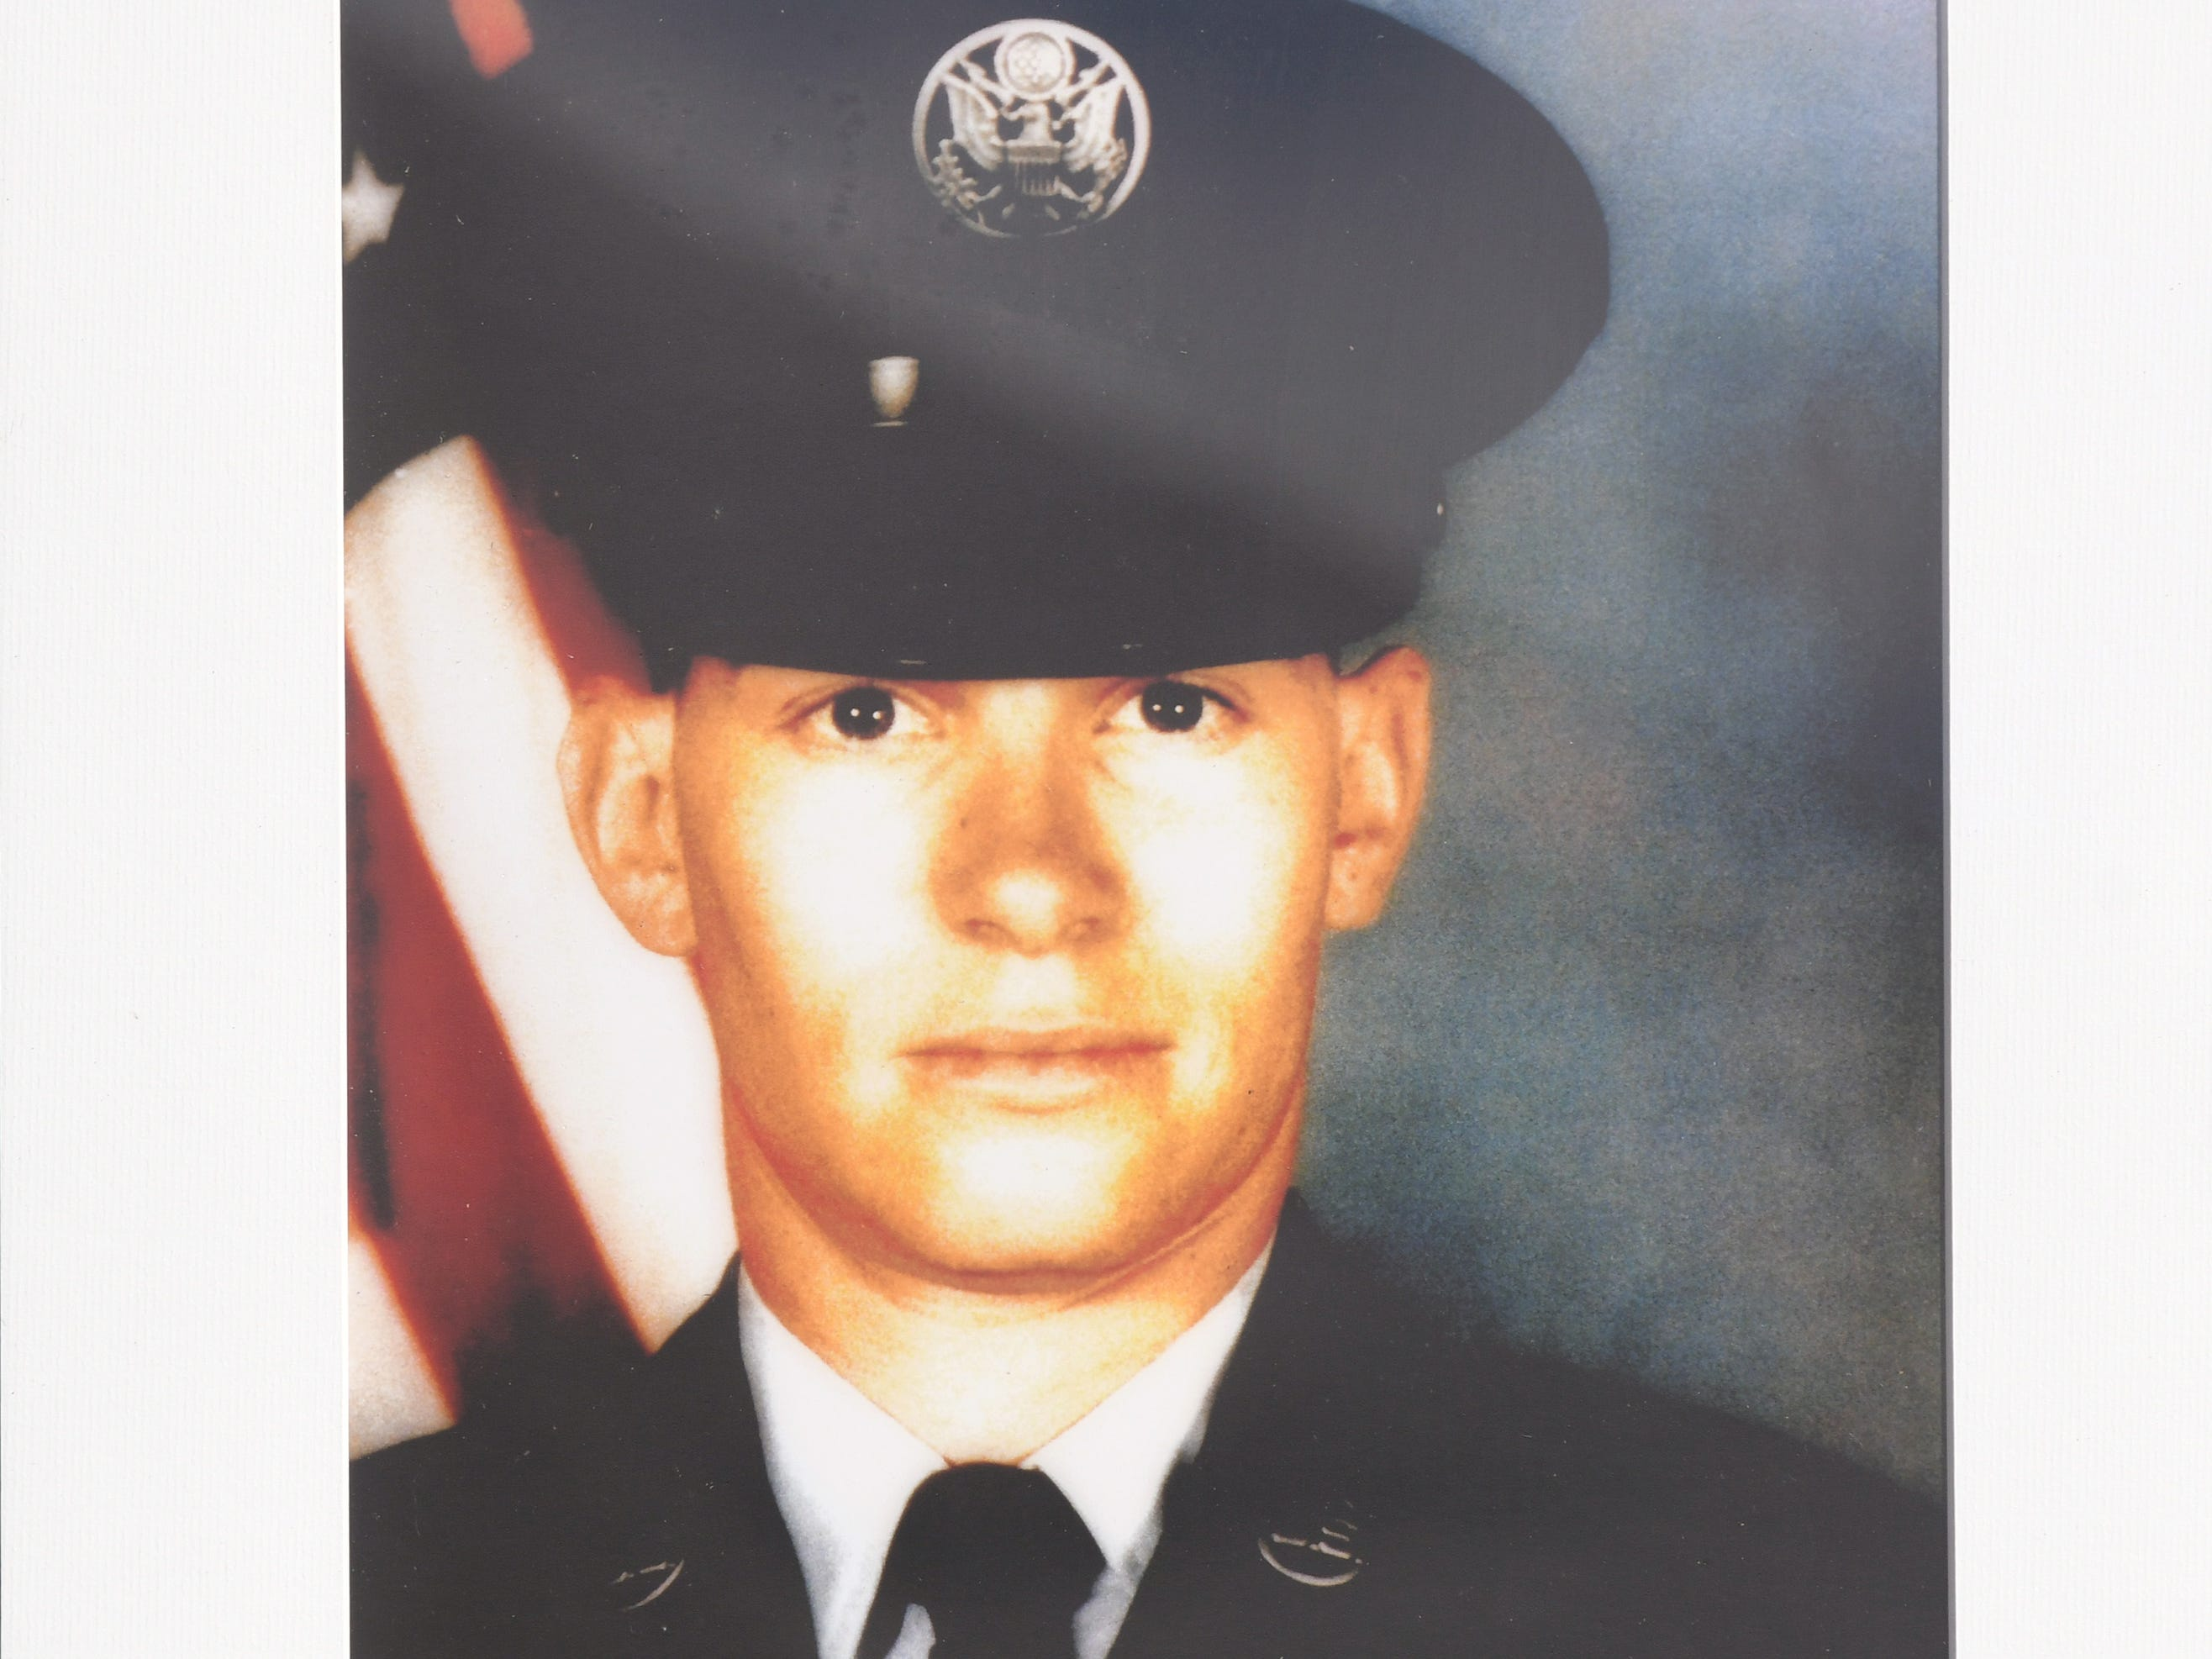 U.S. Air Force Sgt. Stacey Levay